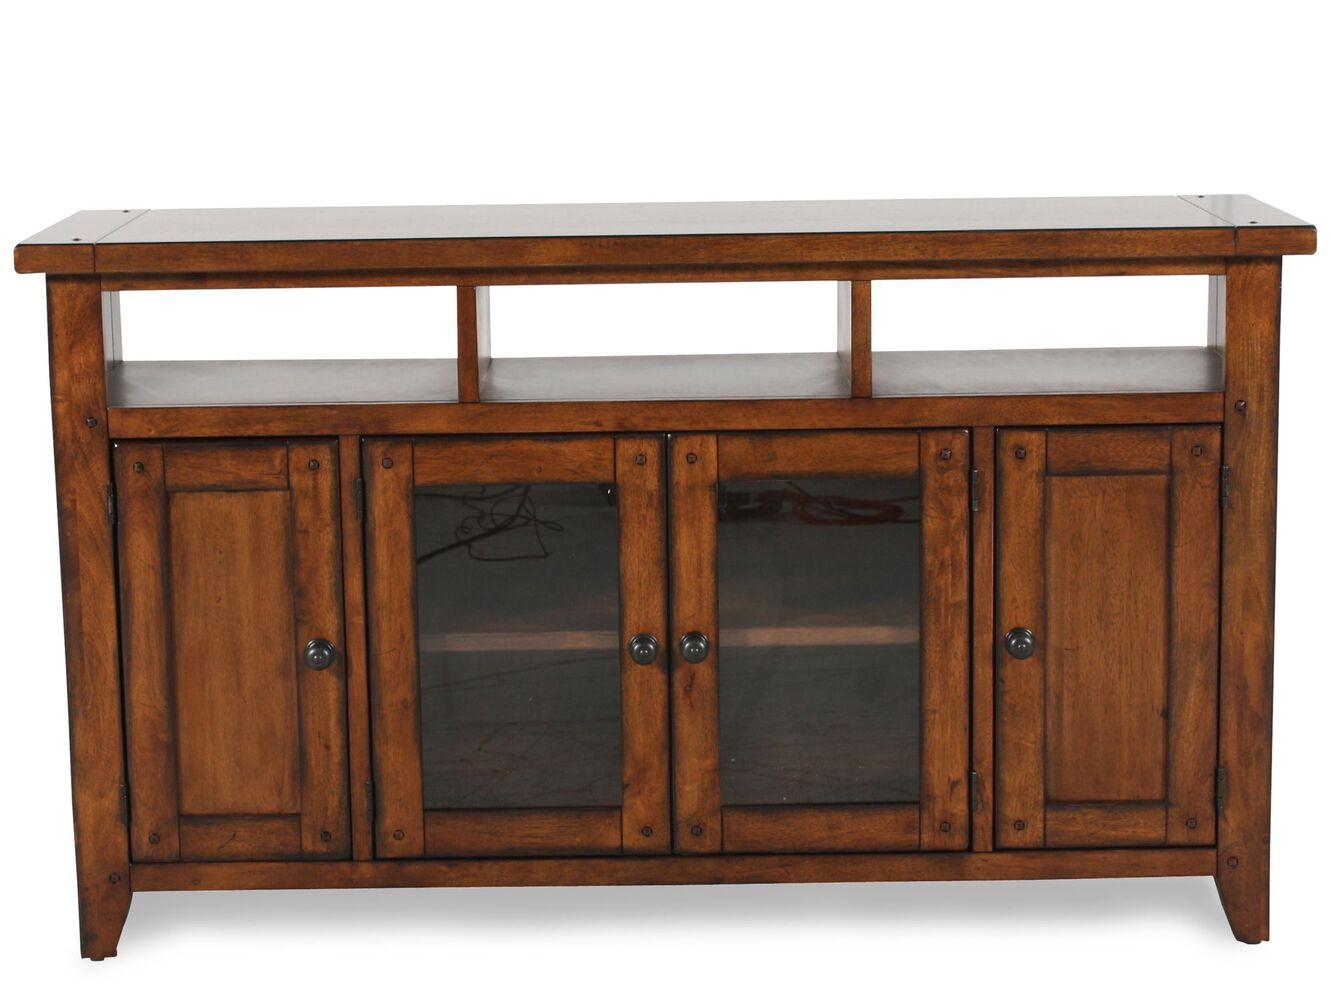 Four Door Country Entertainment Console In Saddle Brown